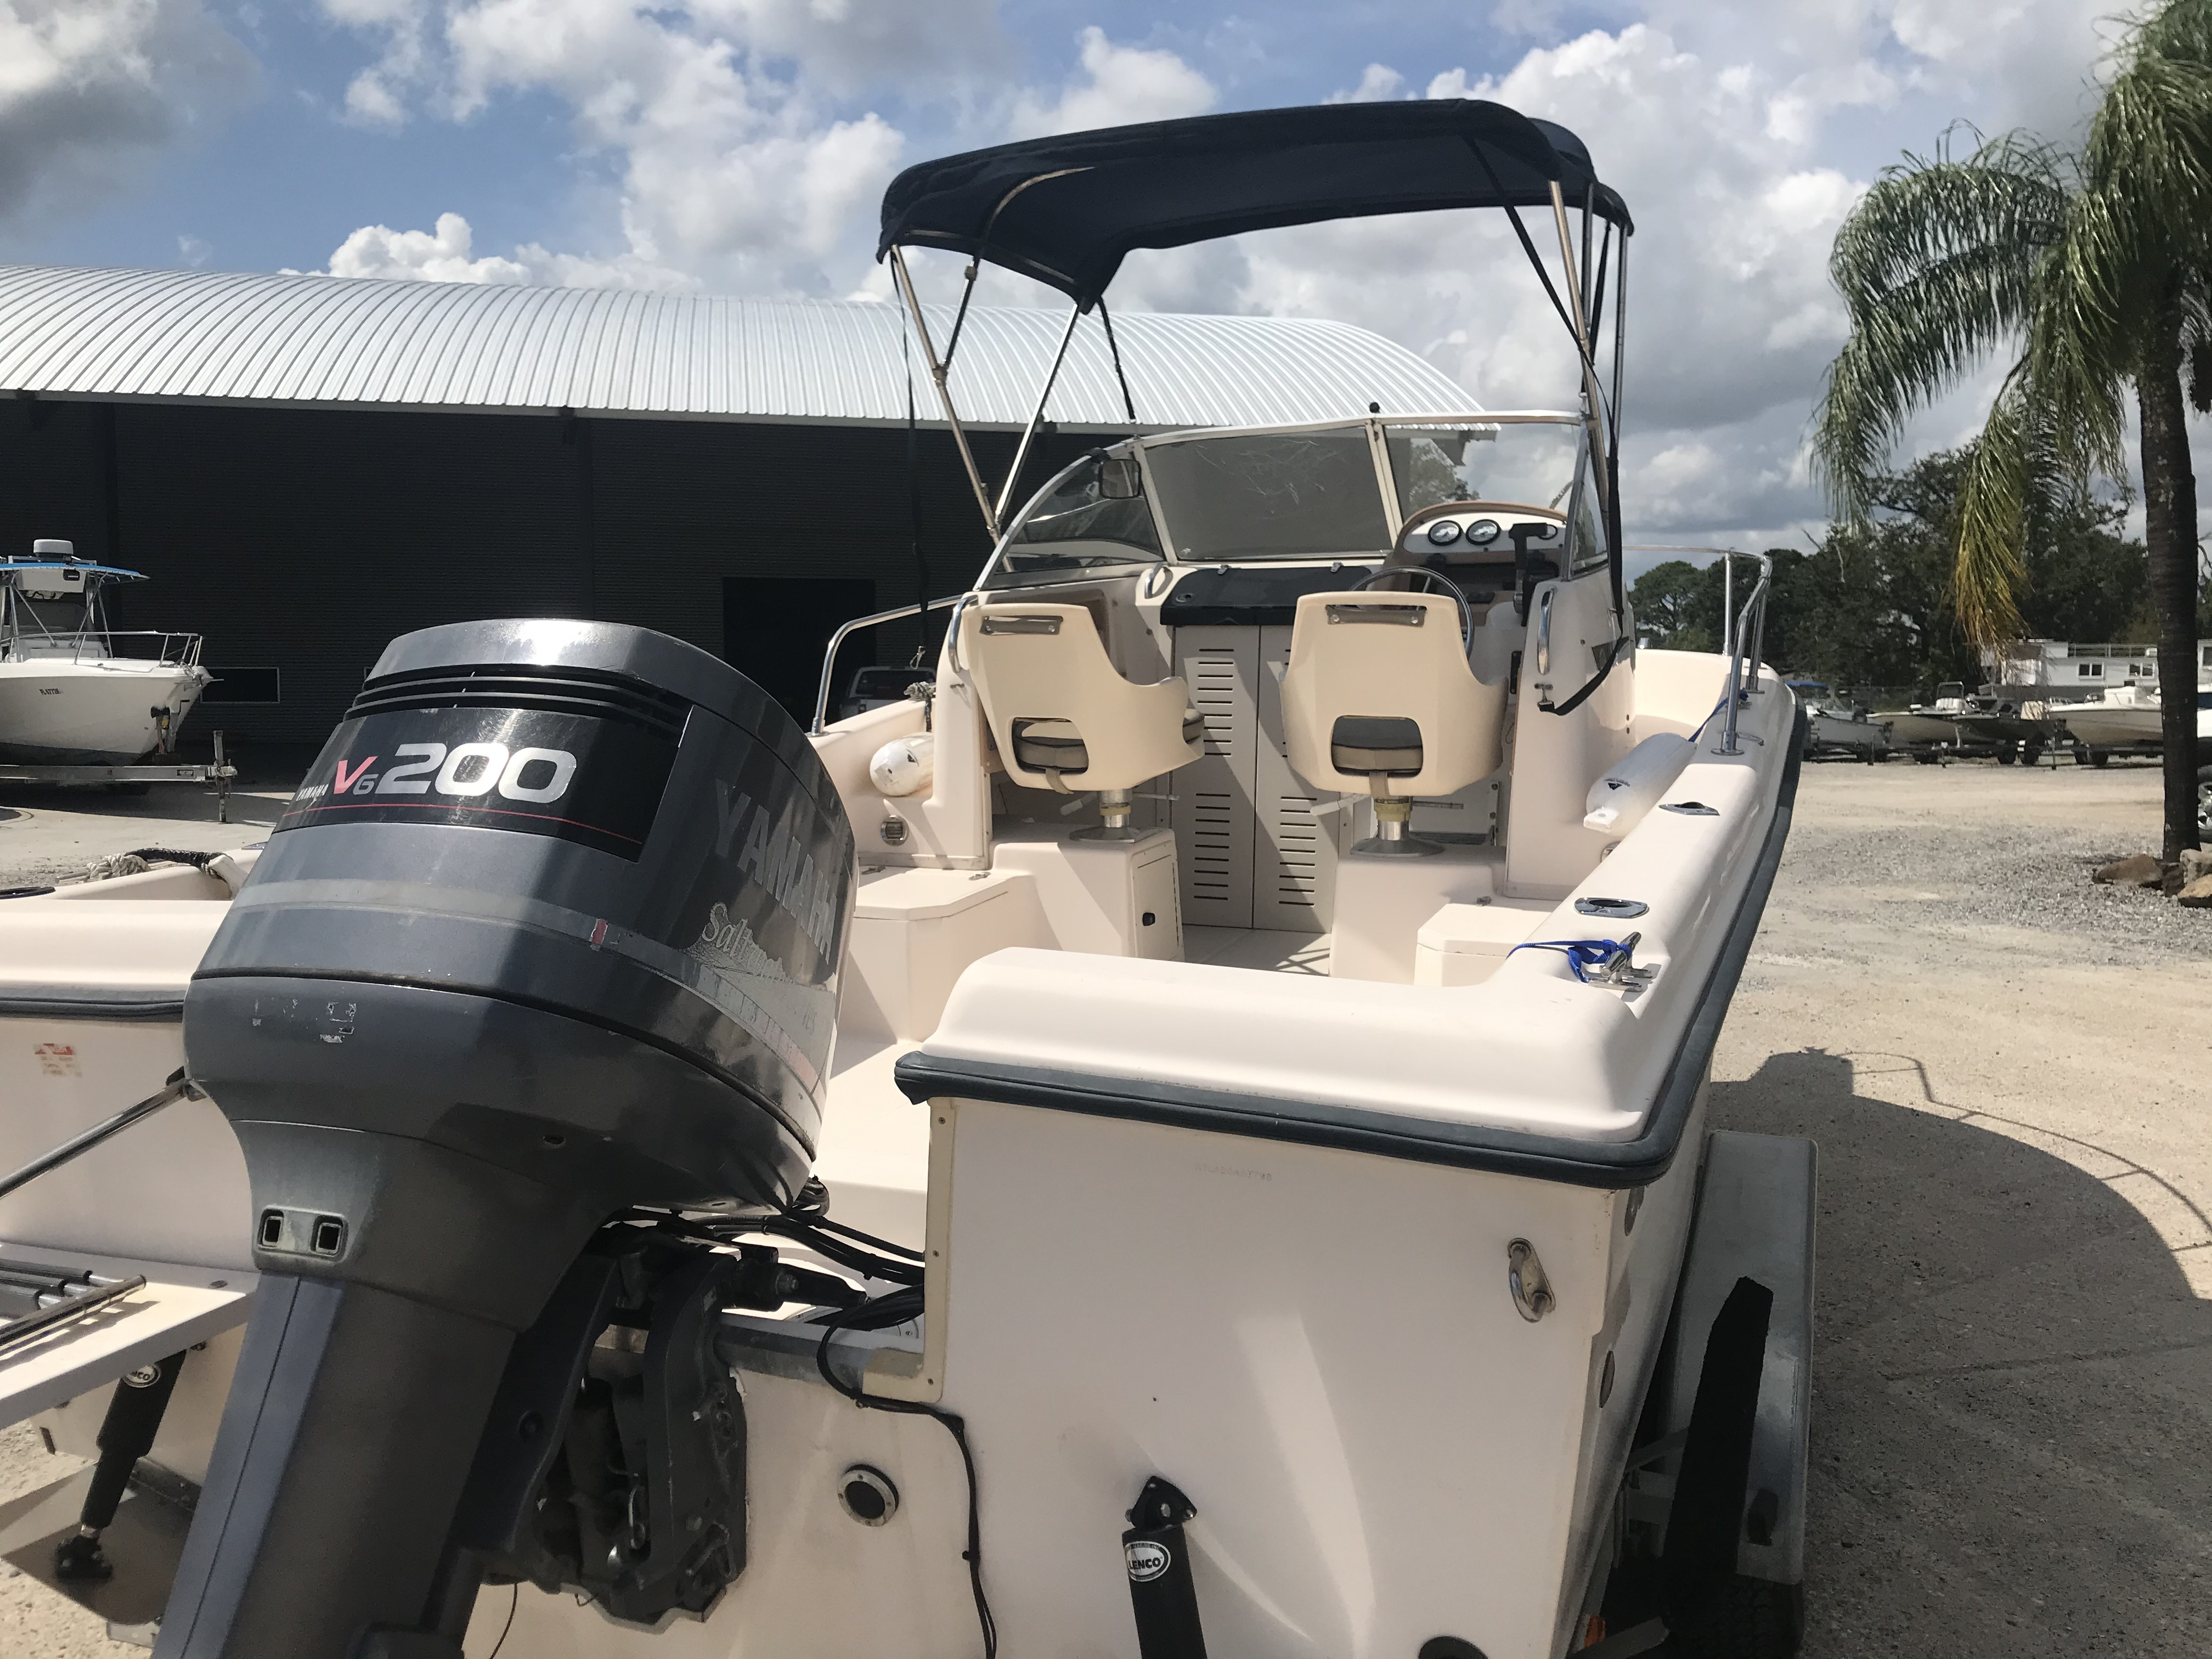 1998 Grady-White boat for sale, model of the boat is Adventure 208 & Image # 12 of 15